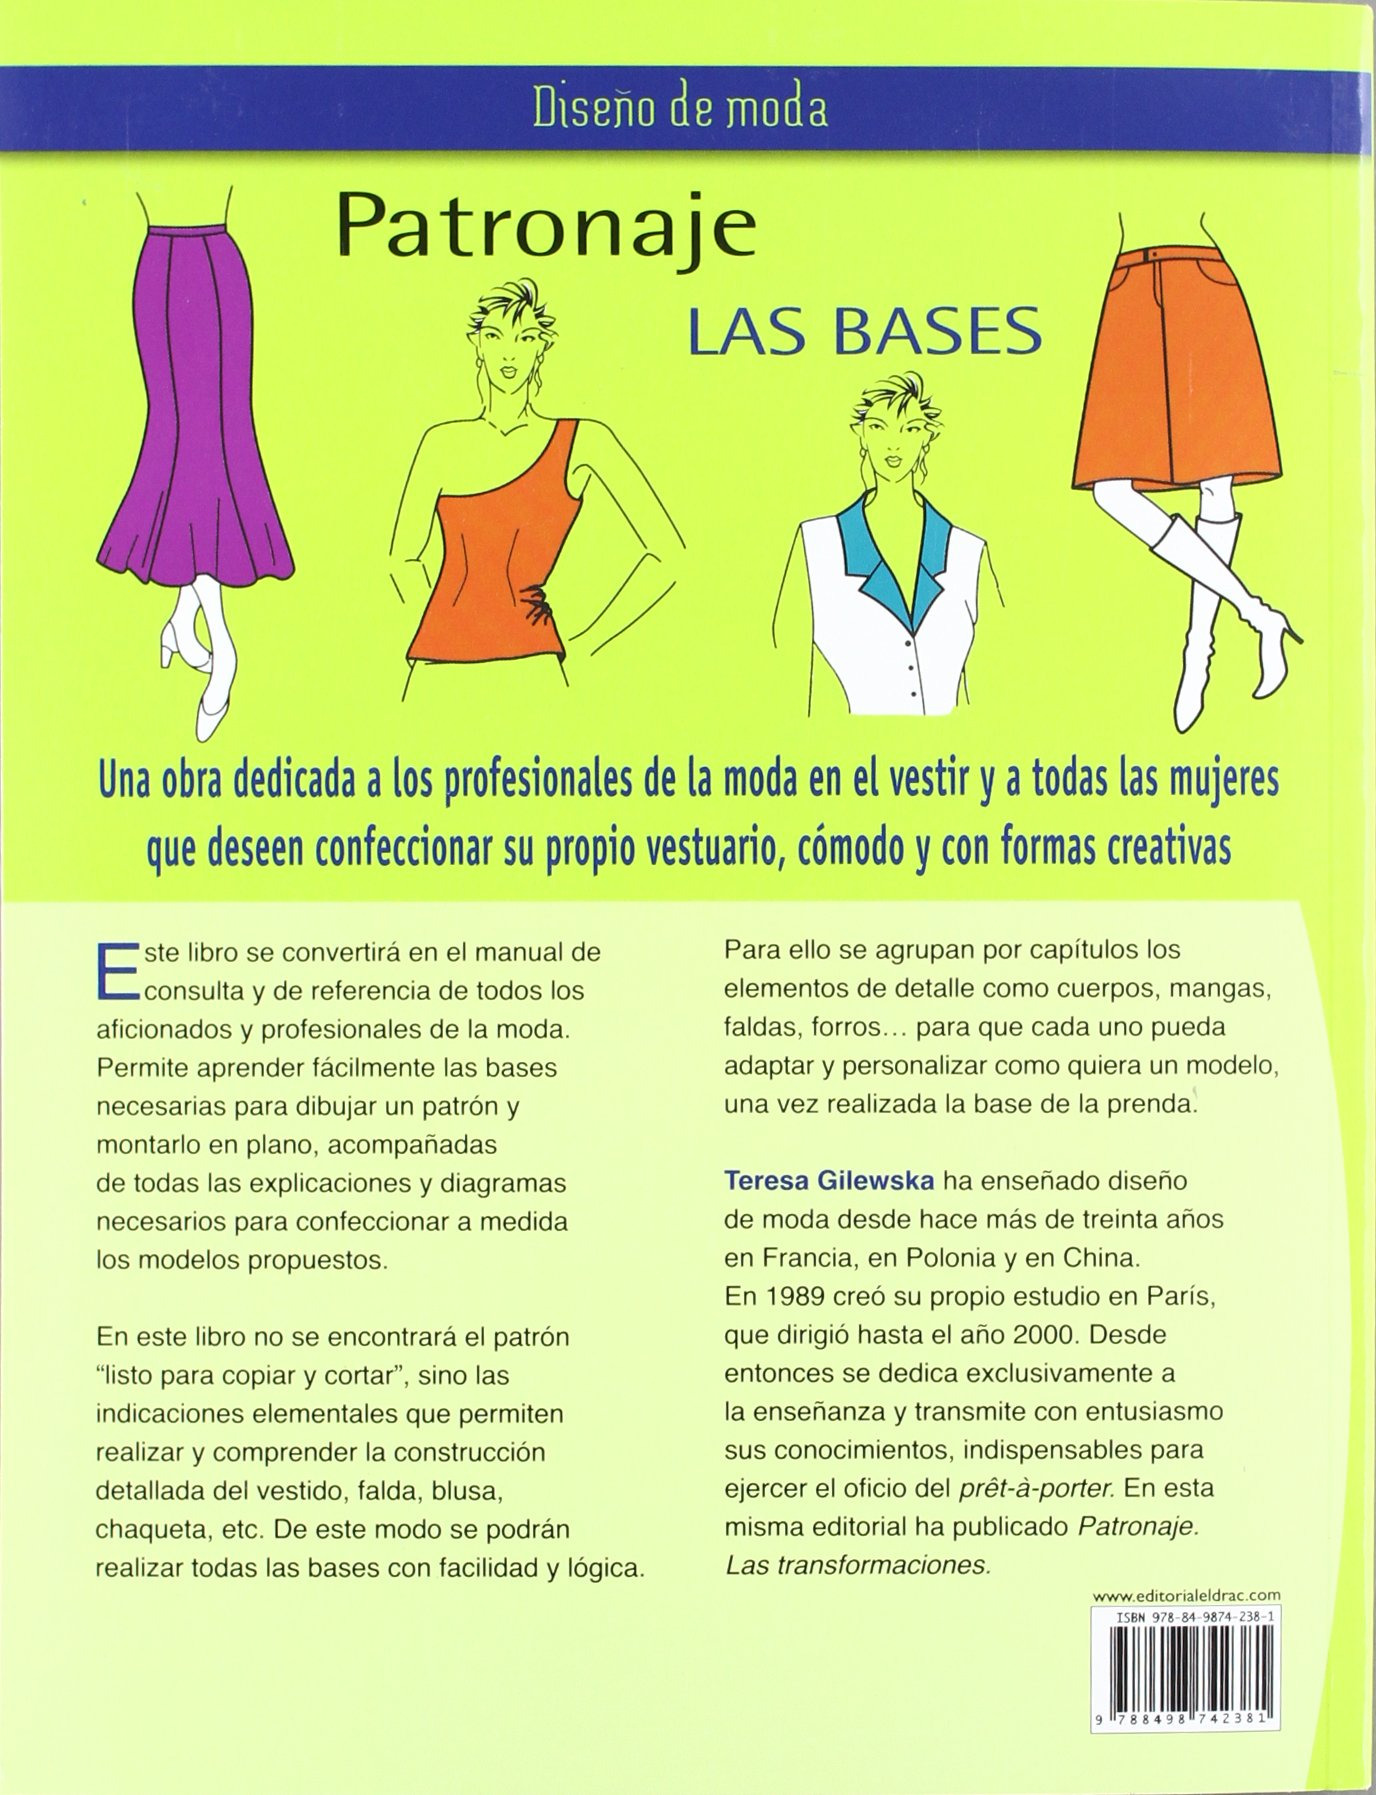 Patronaje, las bases / Pattern, the Basis (Diseño de moda / Fashion Design) (Spanish Edition): Teresa Gilewska: 9788498742381: Amazon.com: Books